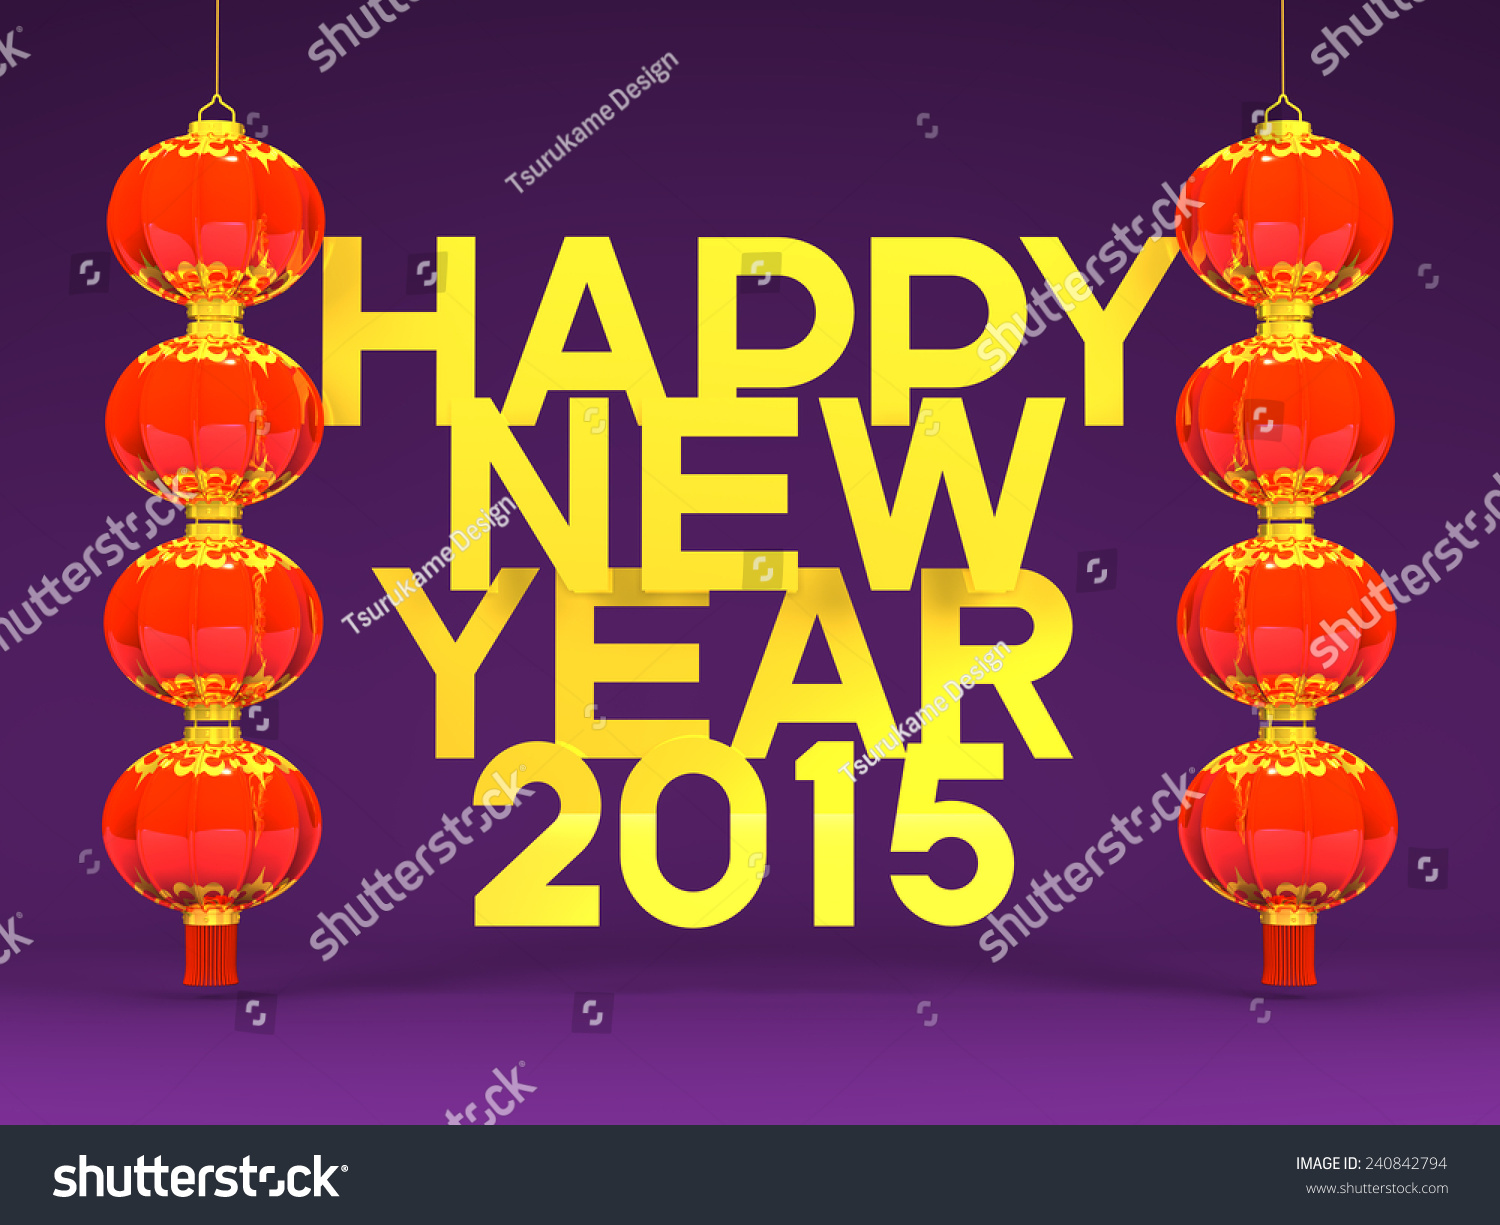 Lunar new years lantans 2015 greeting stock illustration 240842794 lunar new years lantans 2015 greeting on purple 3d render illustration for new years kristyandbryce Gallery